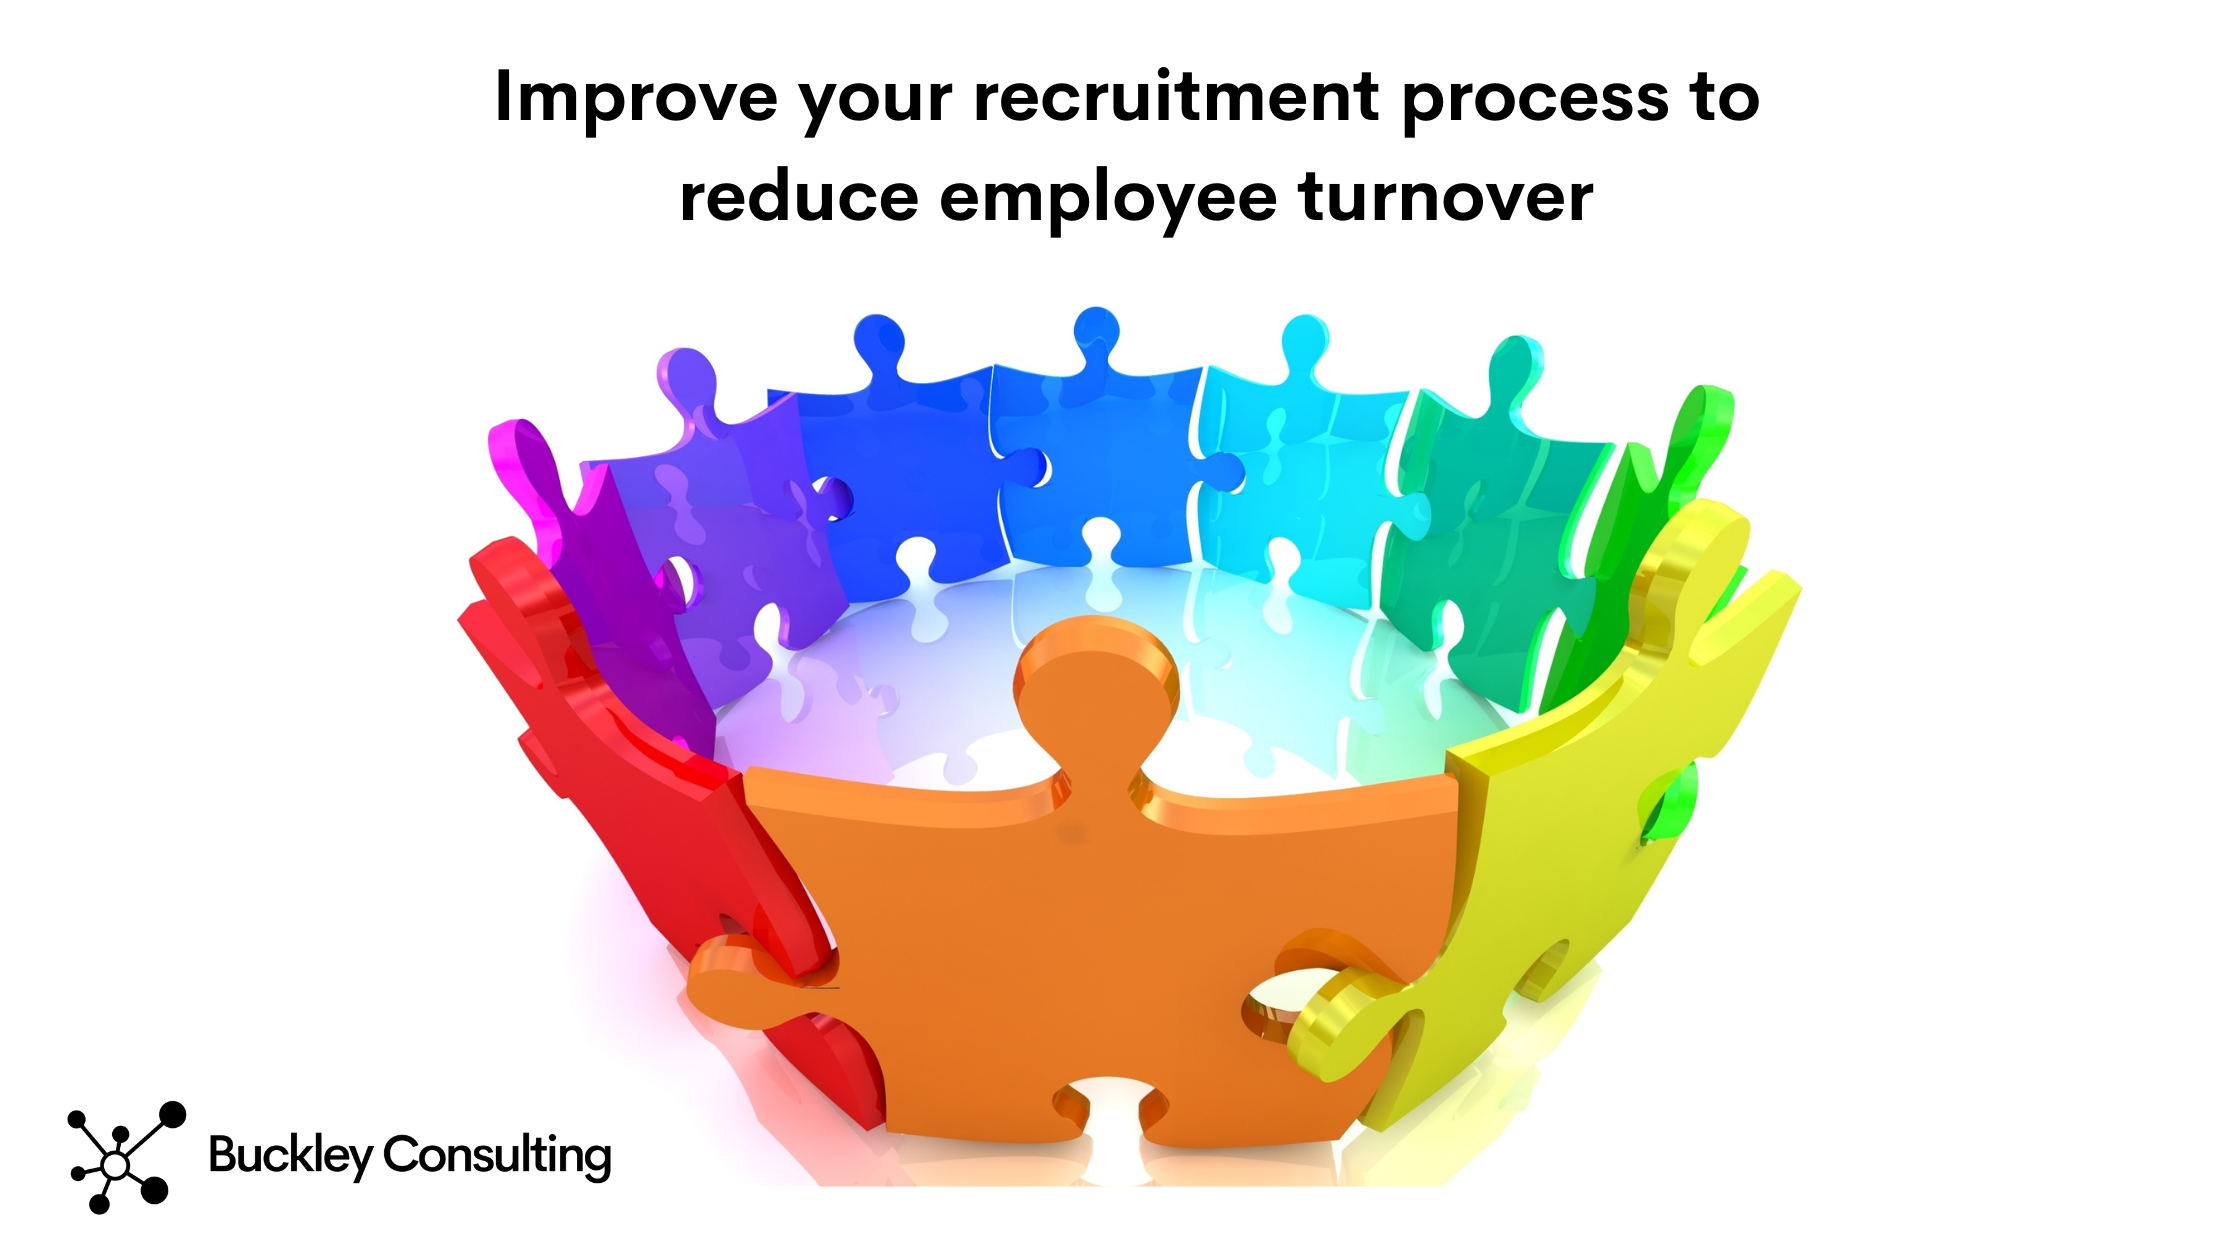 Improve your experienced hire recruitment process to reduce employee turnover